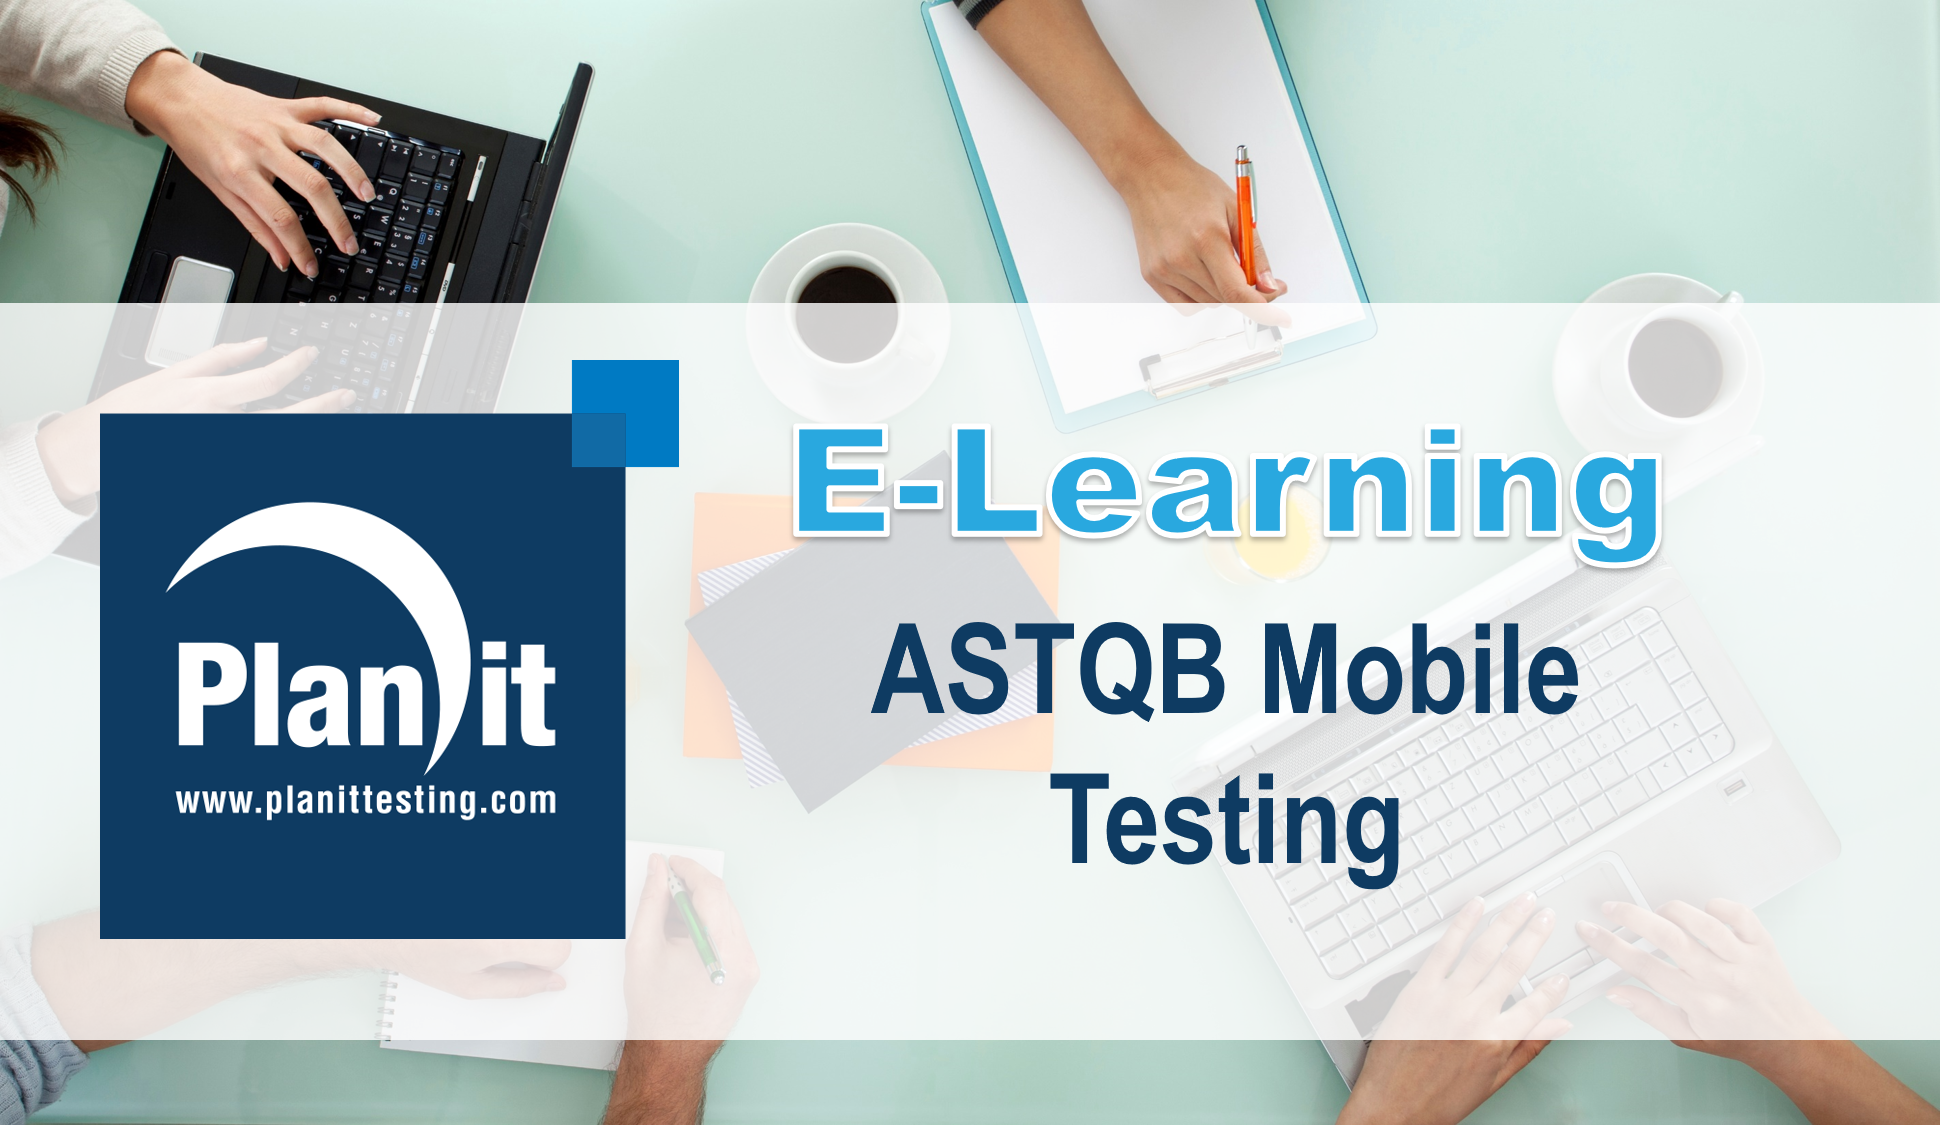 ASTQB Mobile Testing - Section 6